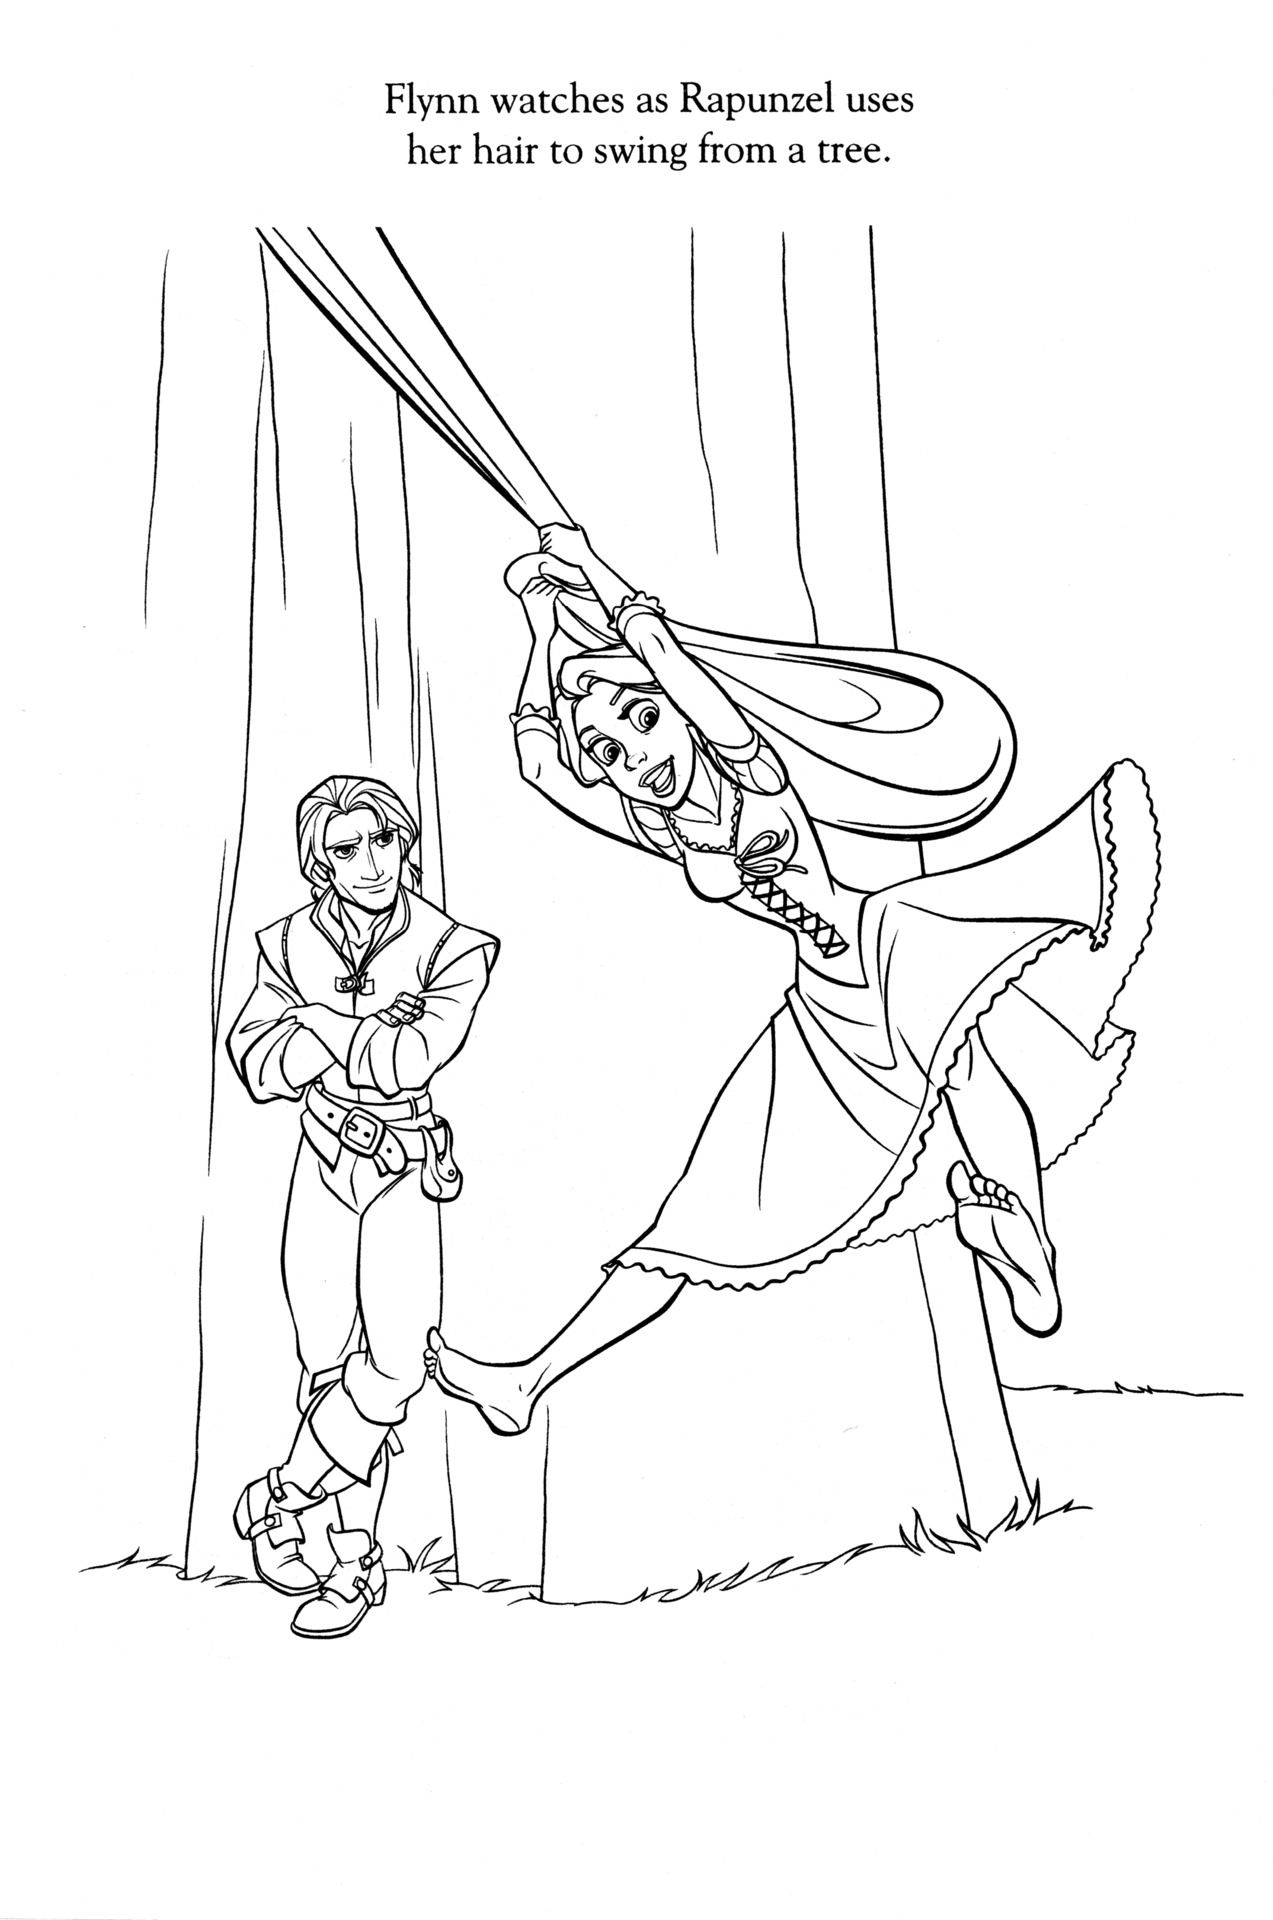 Pin By Shelly Ratliff On Coloring Pages And Fun Images To Draw Disney Princess Coloring Pages Disney Coloring Pages Princess Coloring Pages